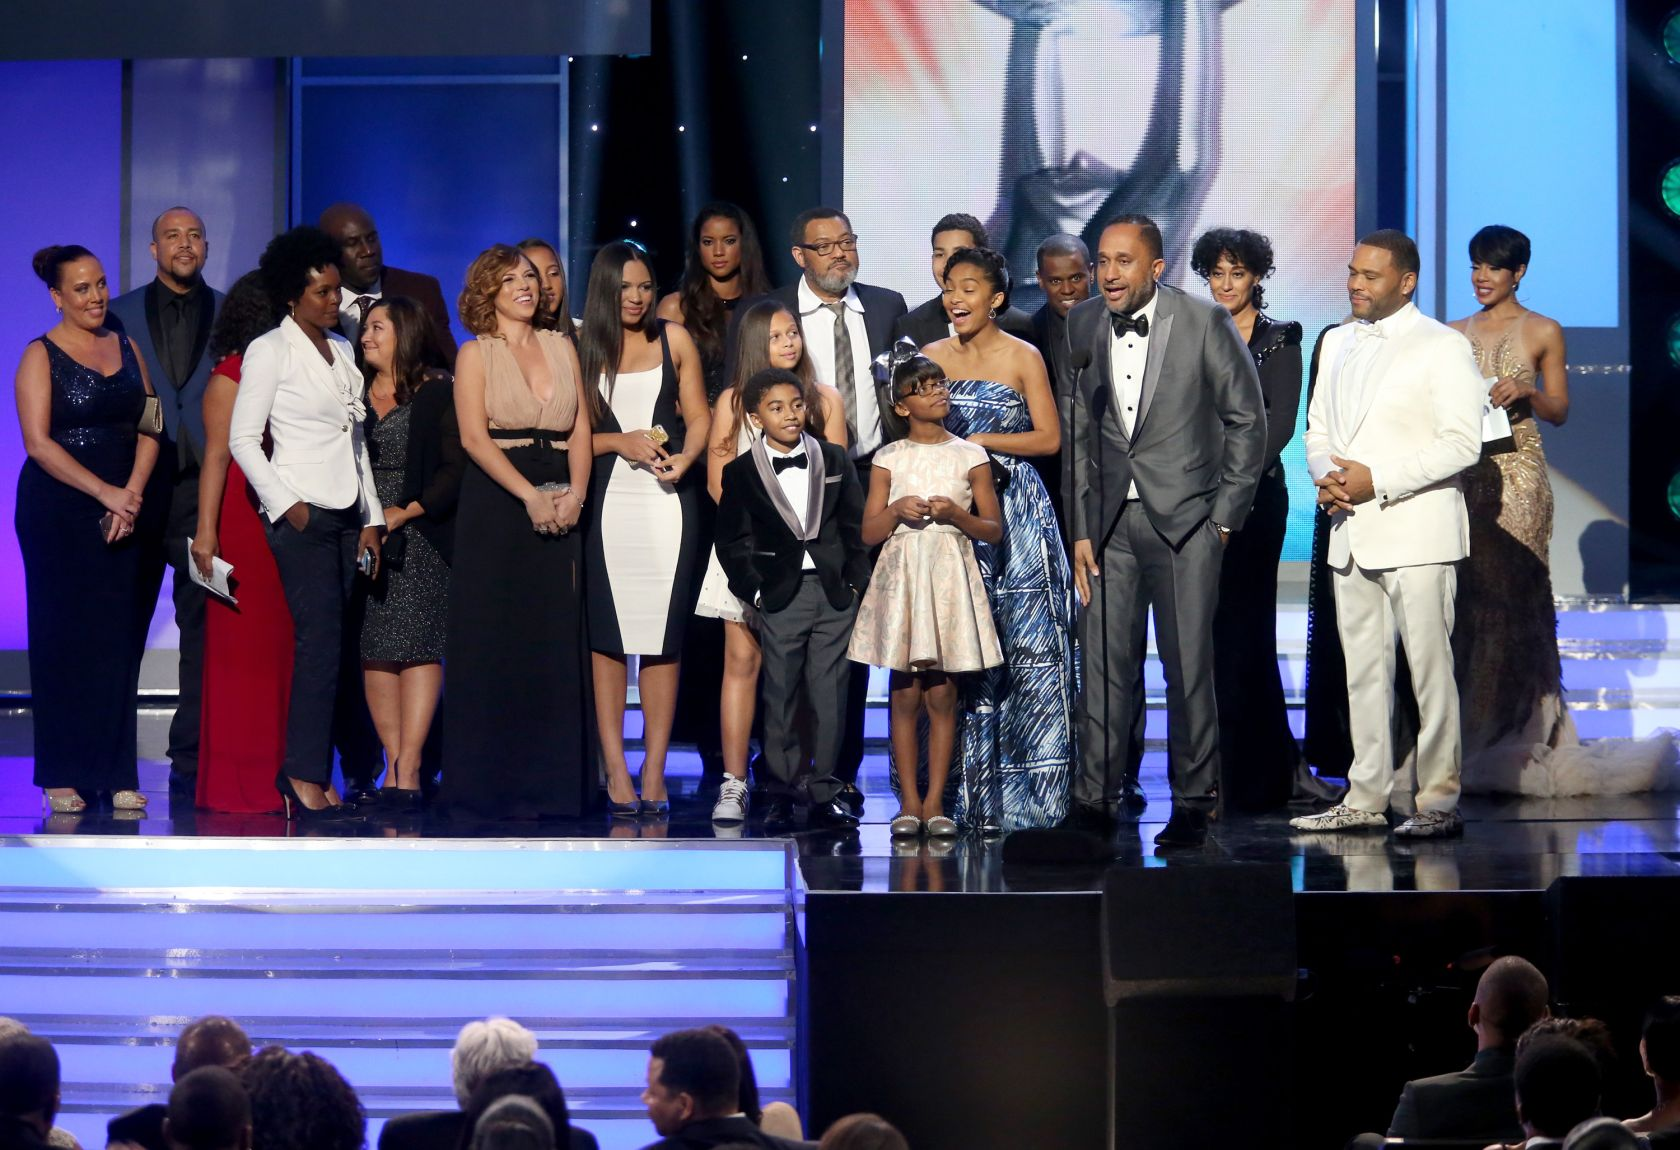 47th NAACP Image Awards Presented By TV One - Show